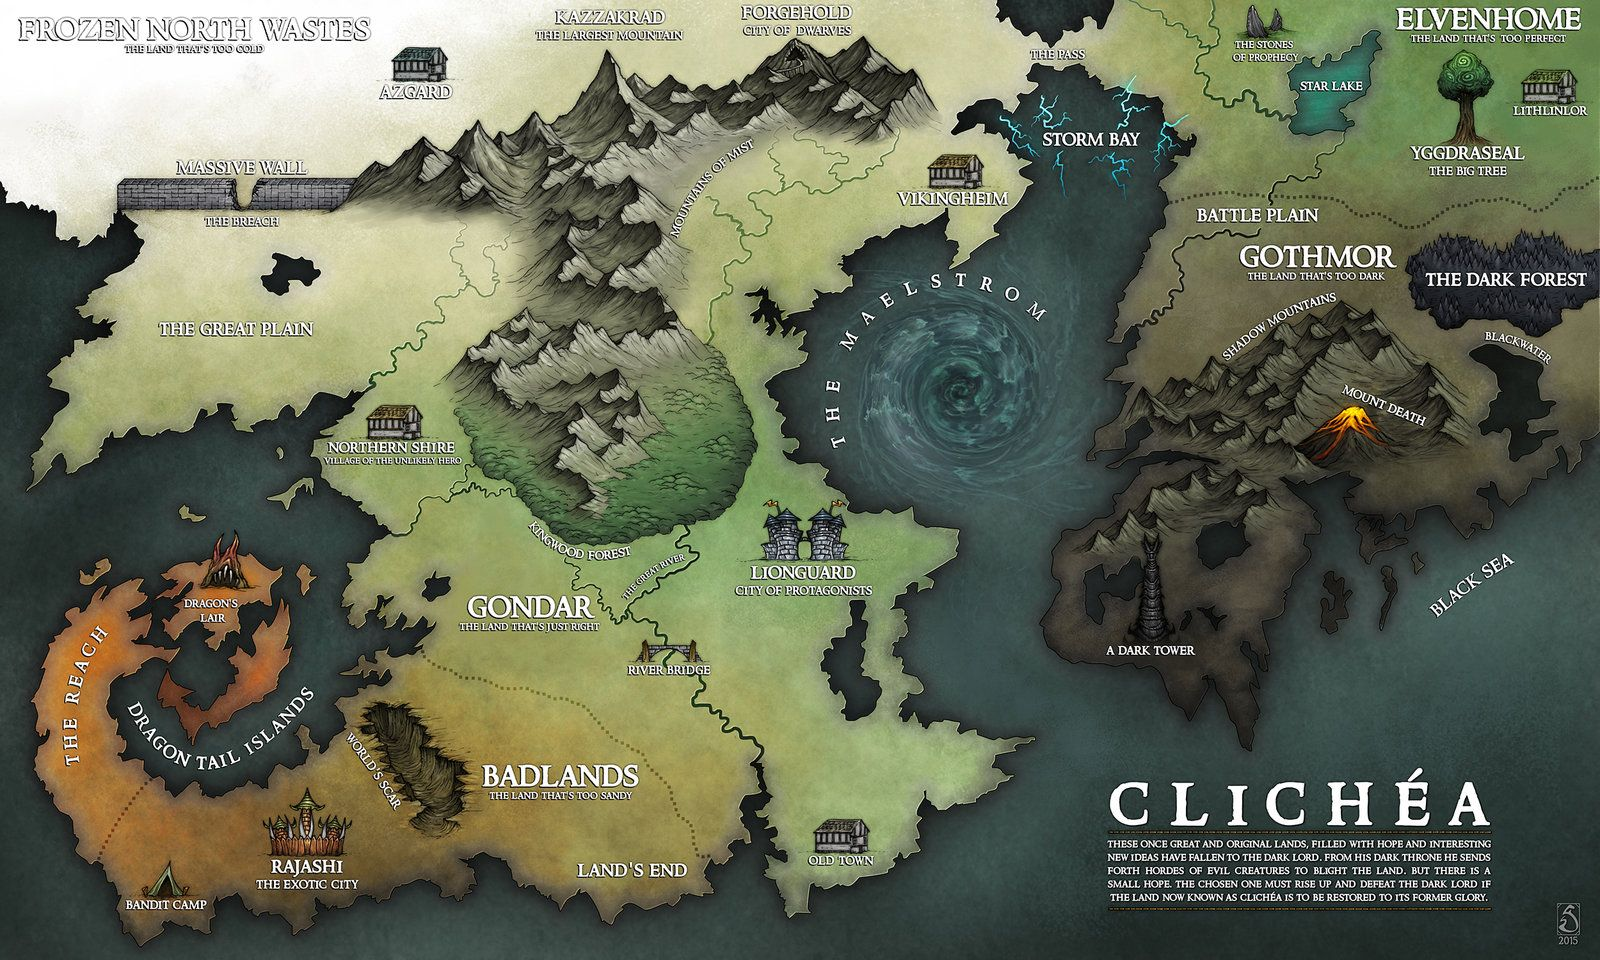 Map of Clichea by Sarithus splaces Pinterest deviantART